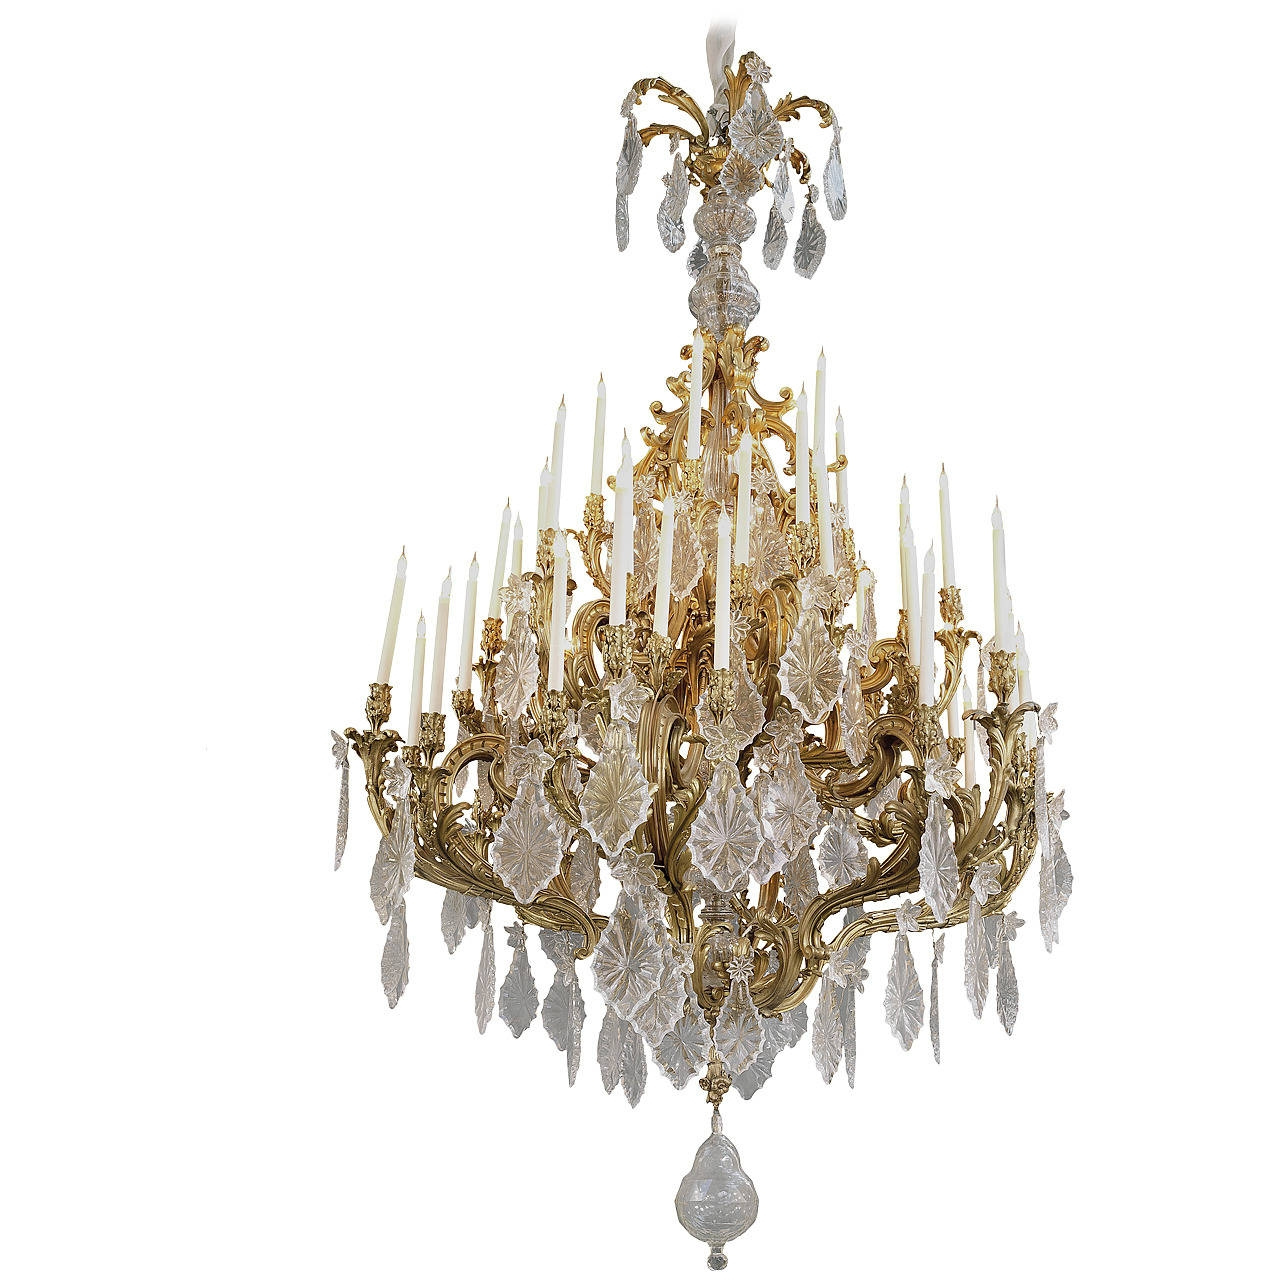 Top 10 Most Expensive Chandeliers In The World Chandeliers And Regarding Expensive Chandeliers (#11 of 12)